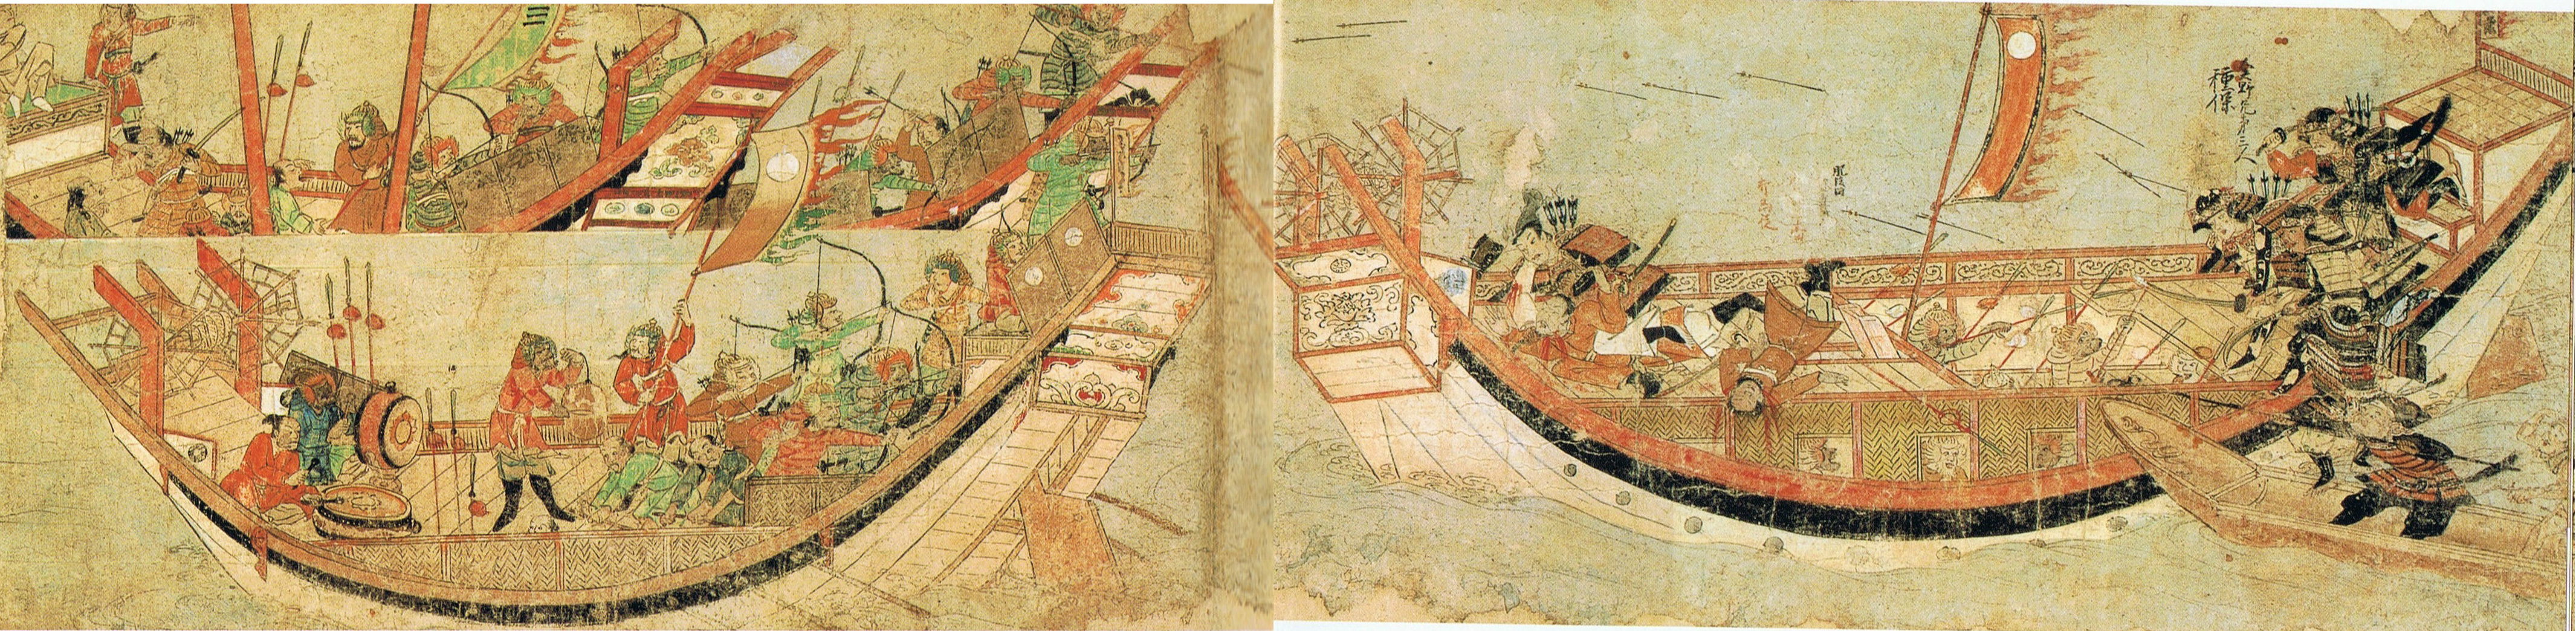 Japanese samurai boarding Yuan ships in 1281 (Wikimedia Commons)